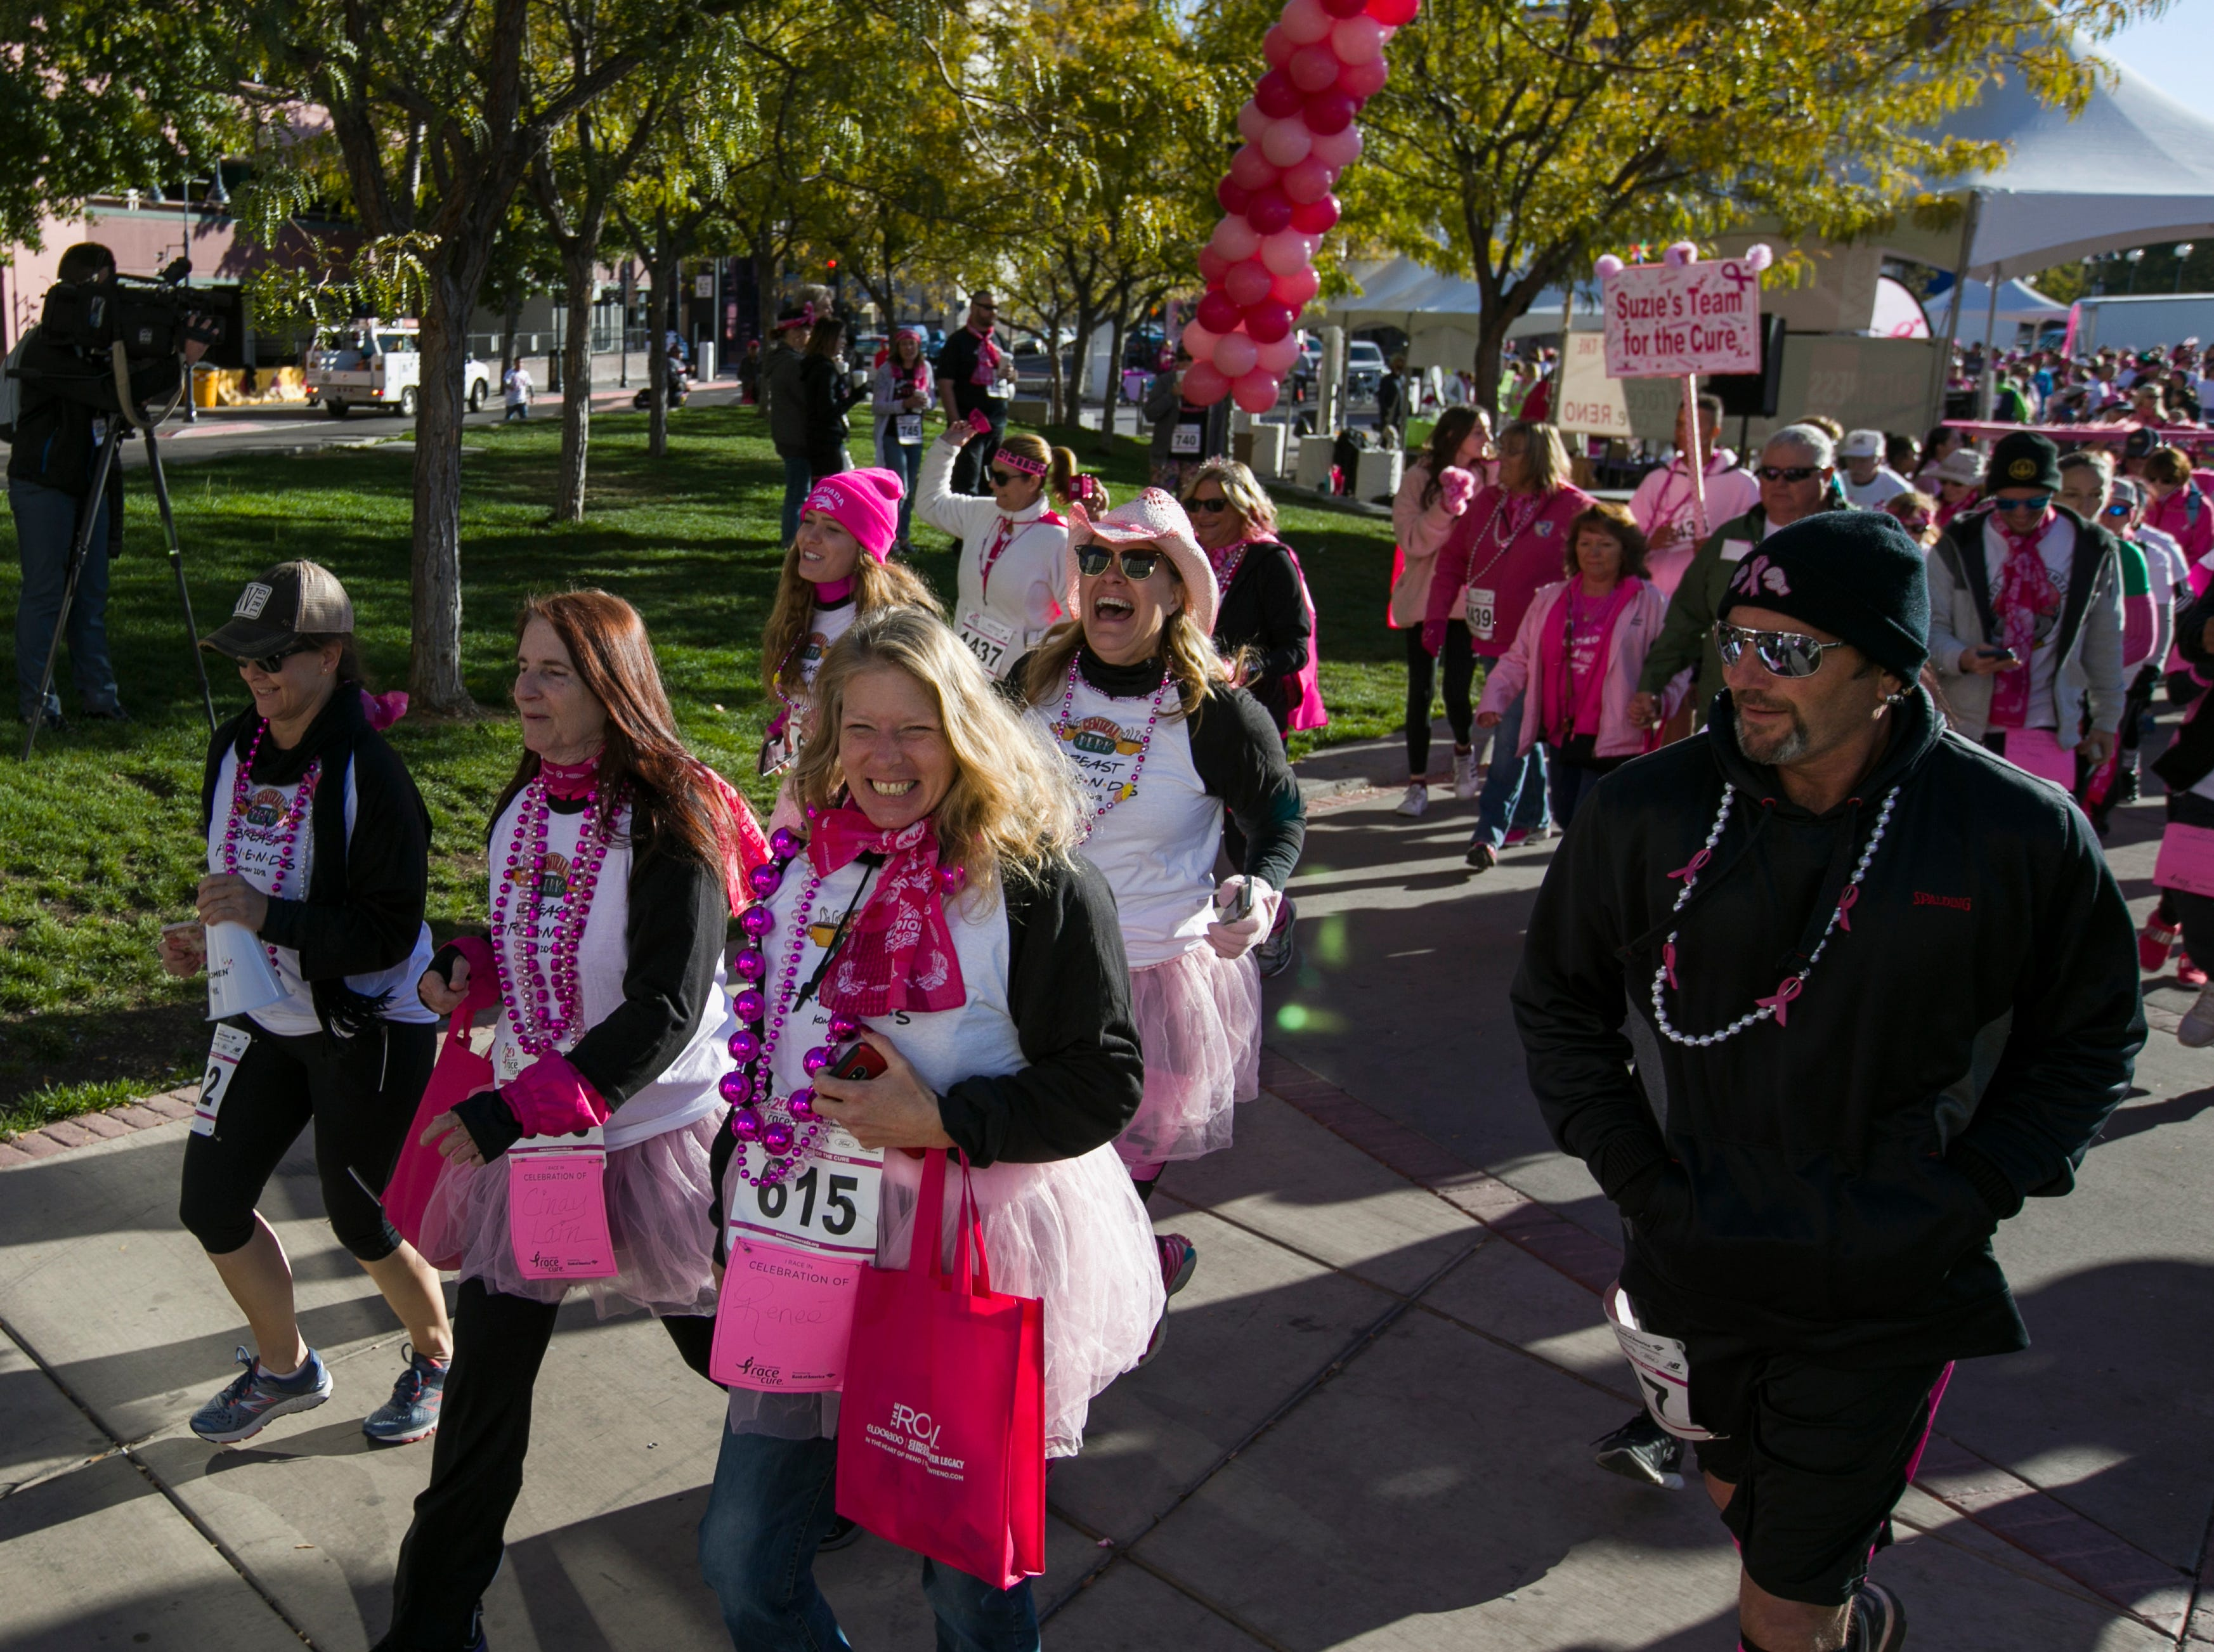 Runners start the Susan G. Komen Race for the Cure on Sunday, October 14,  2018 in downtown Reno.